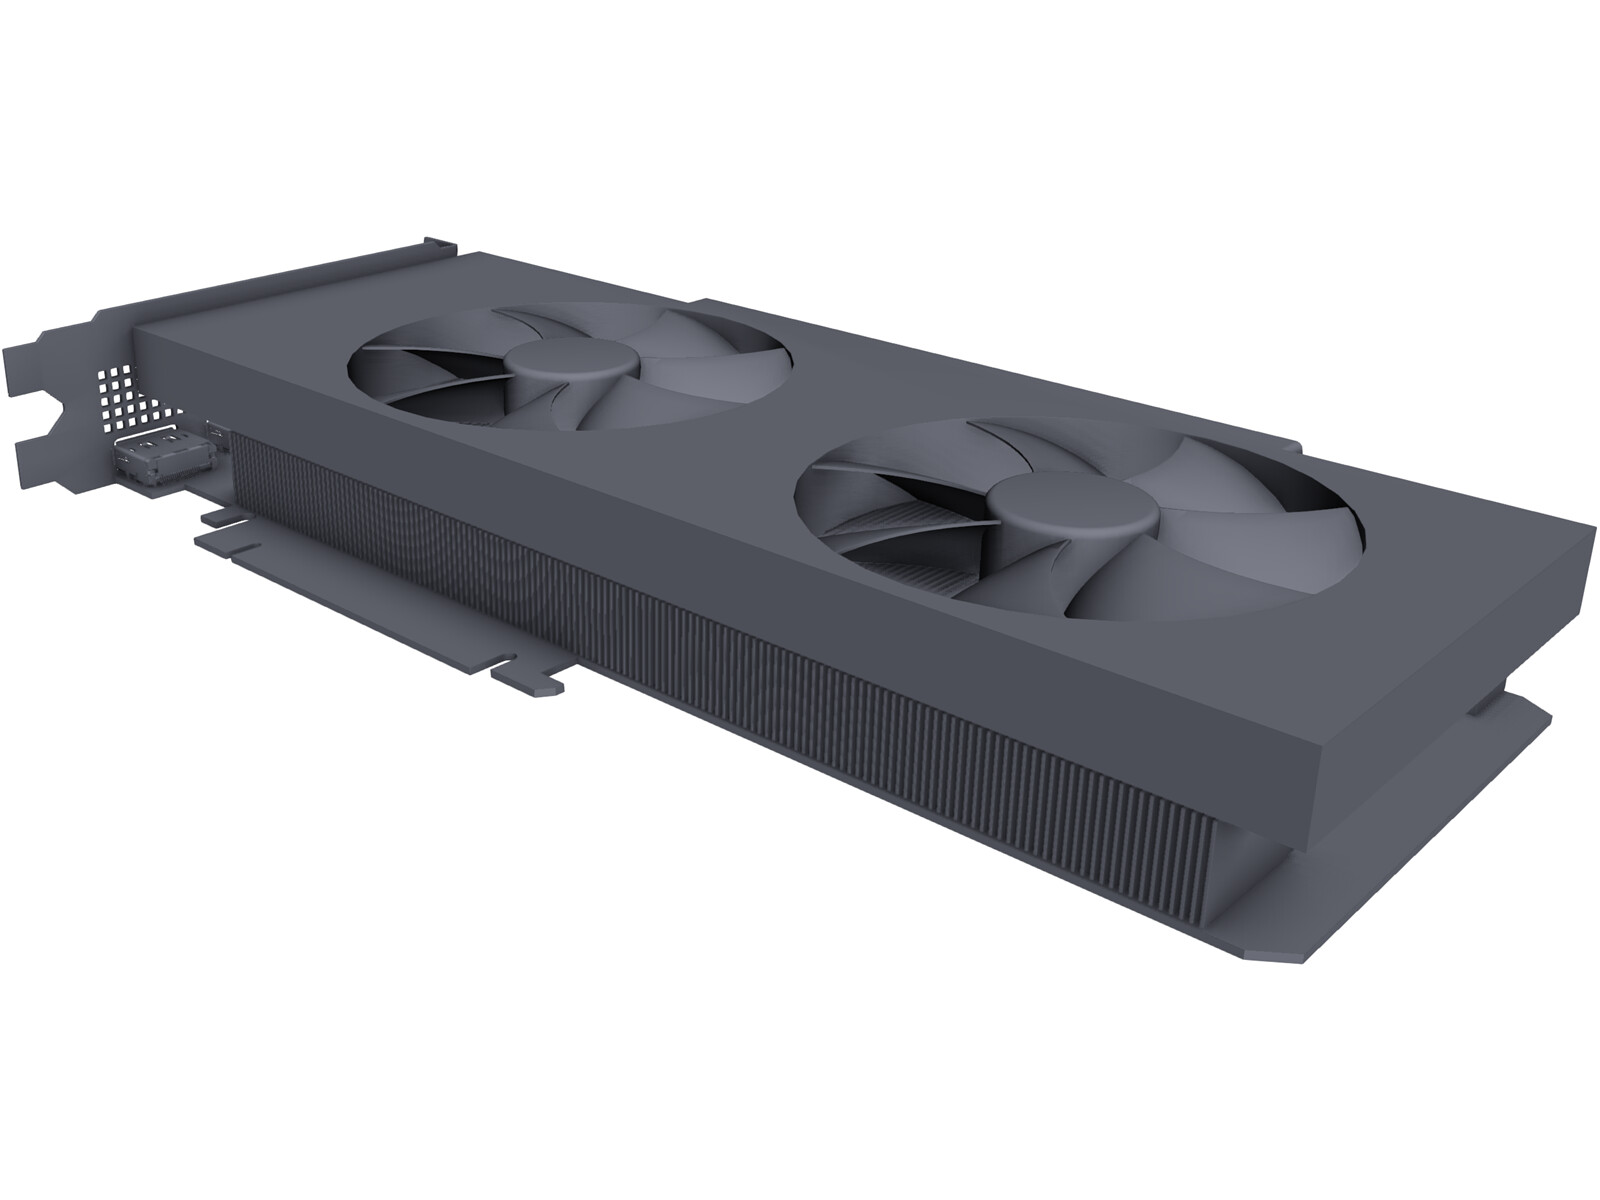 EVGA GeForce GTX 1070 Black Edition 3D Model